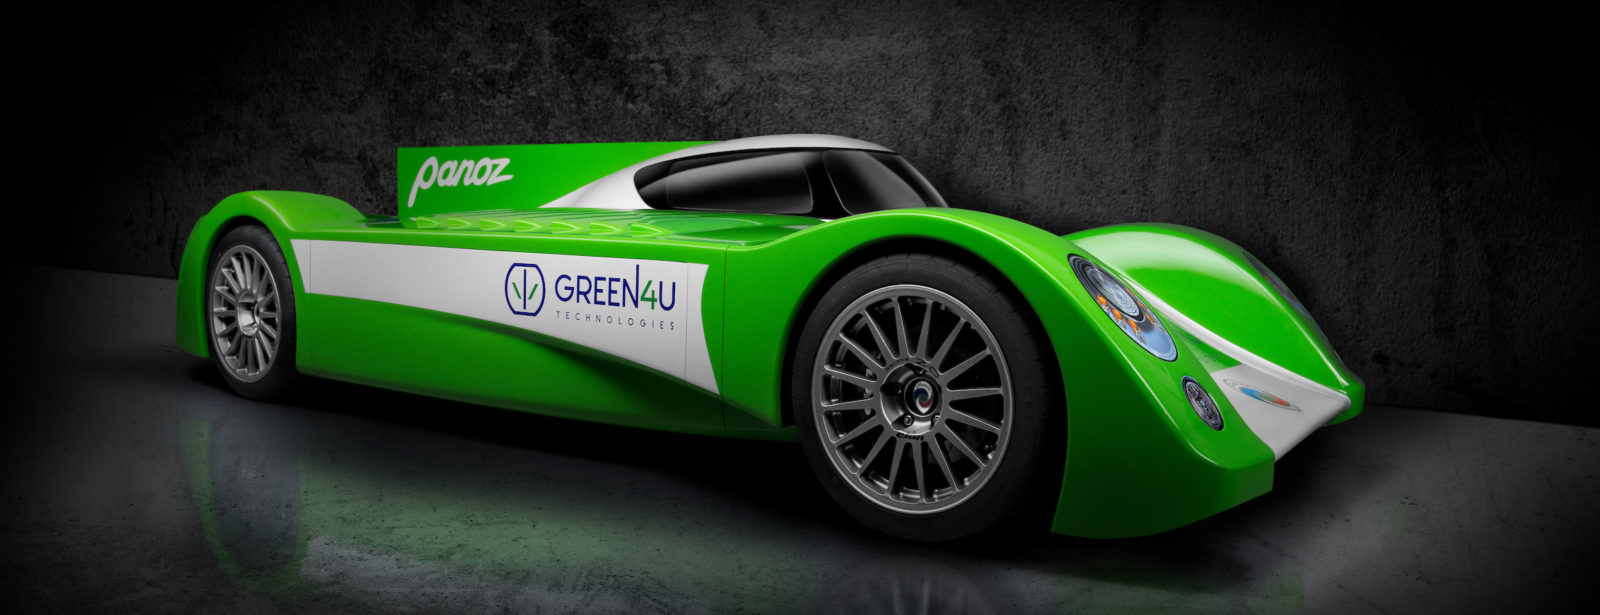 Green4U Technologies, Inc. and Panoz Reveal All-Electric Road-Racing Sports Car Concept